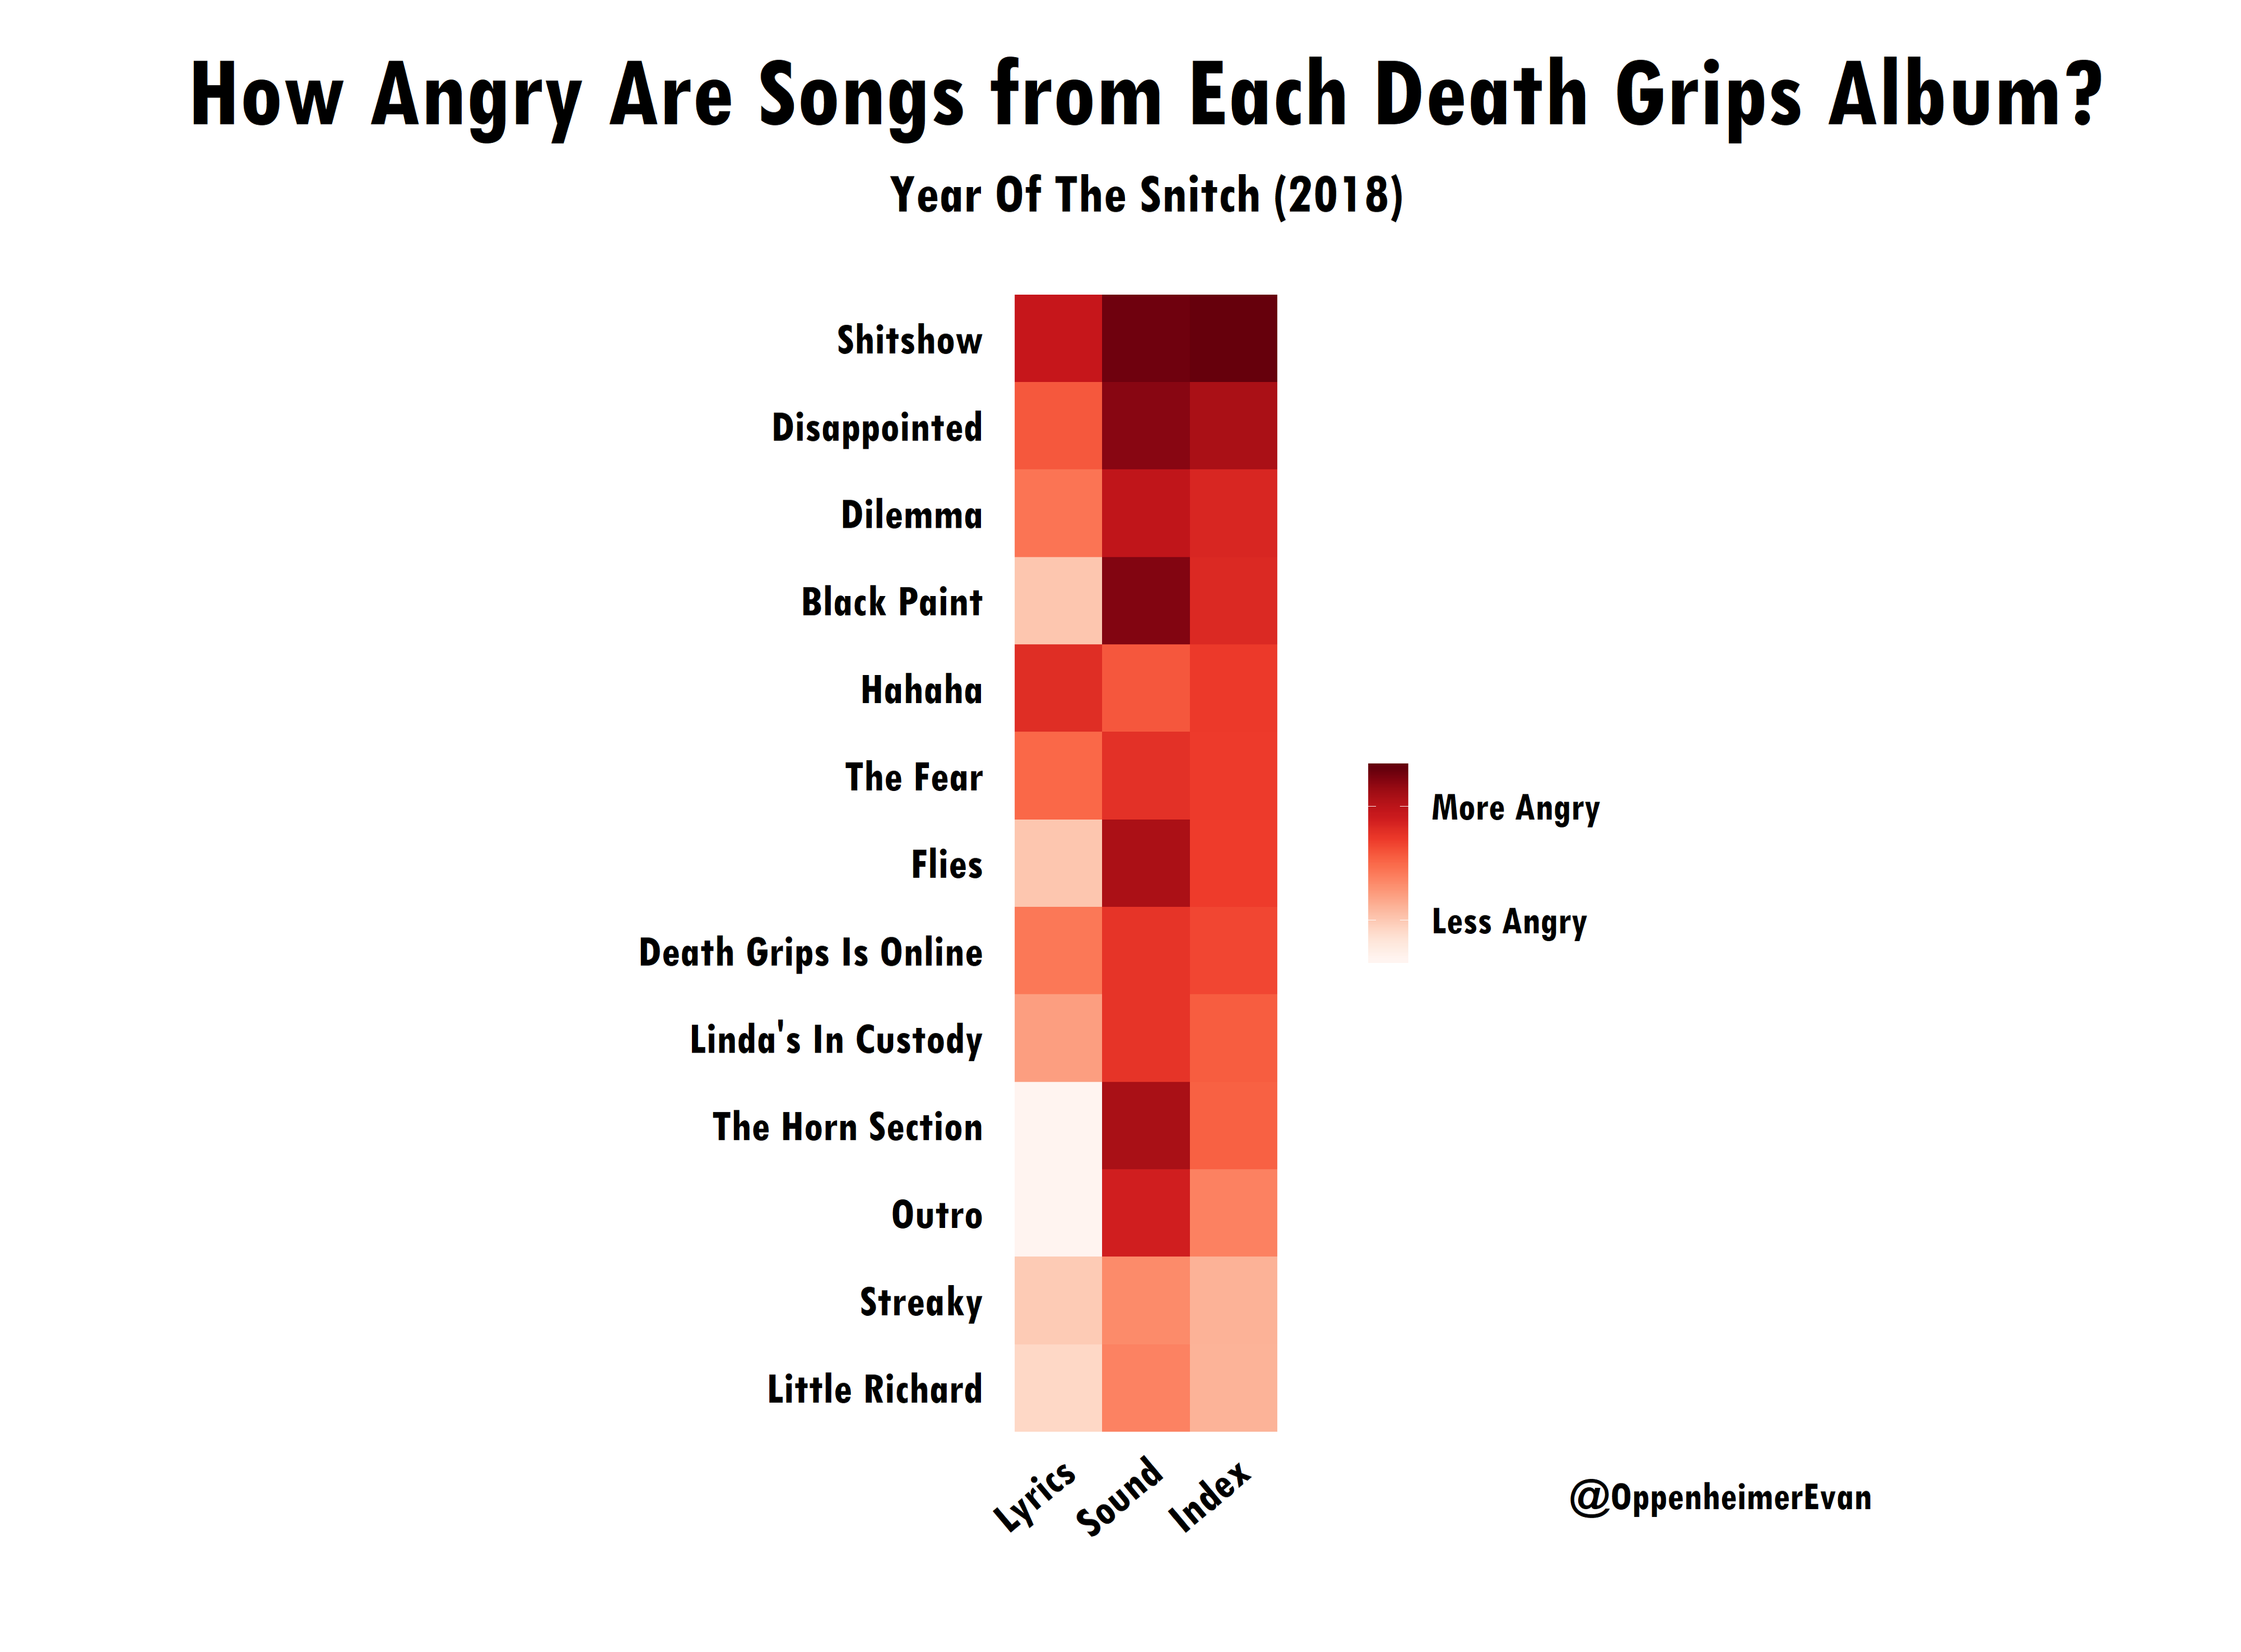 Using Data to Find the Angriest Death Grips Song - Towards